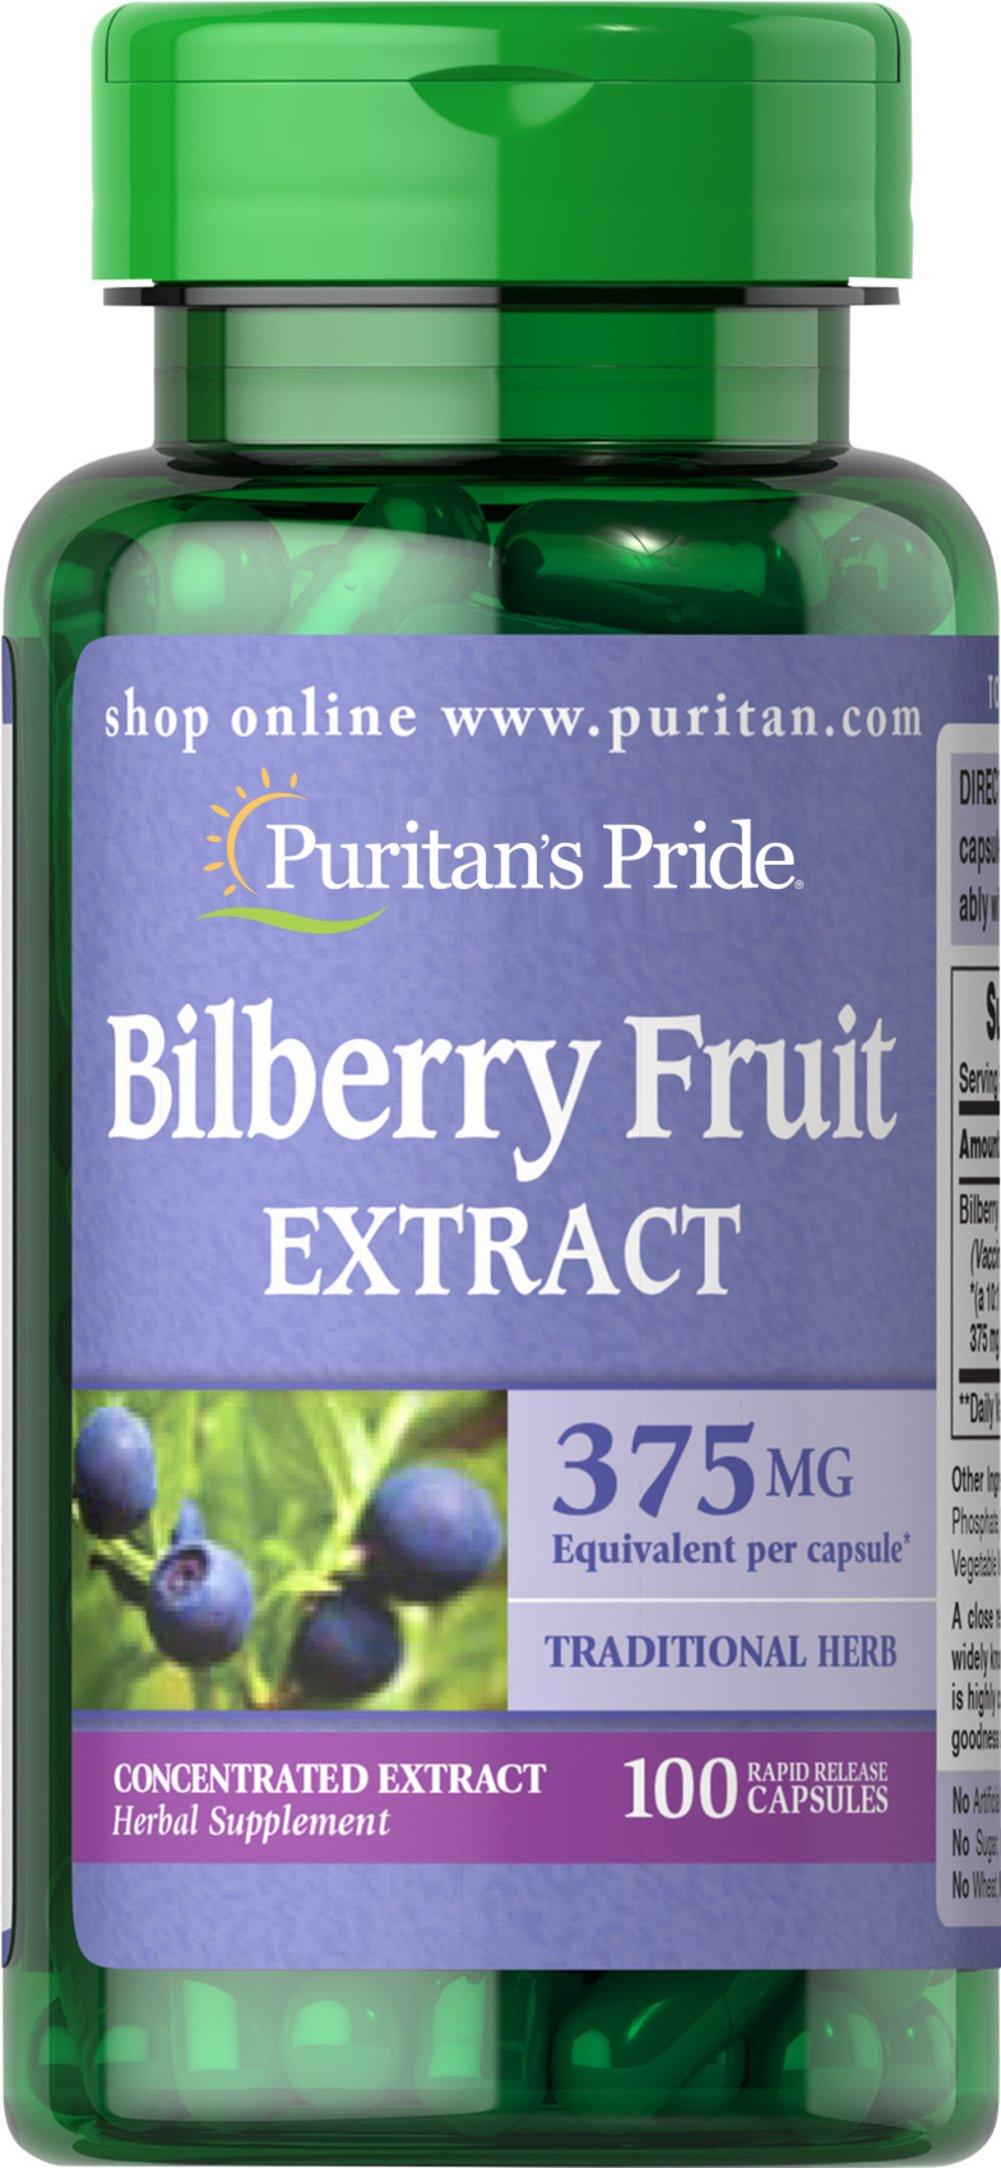 Bilberry 10:1 Extract 375 mg  100 Capsules 375 mg $11.99